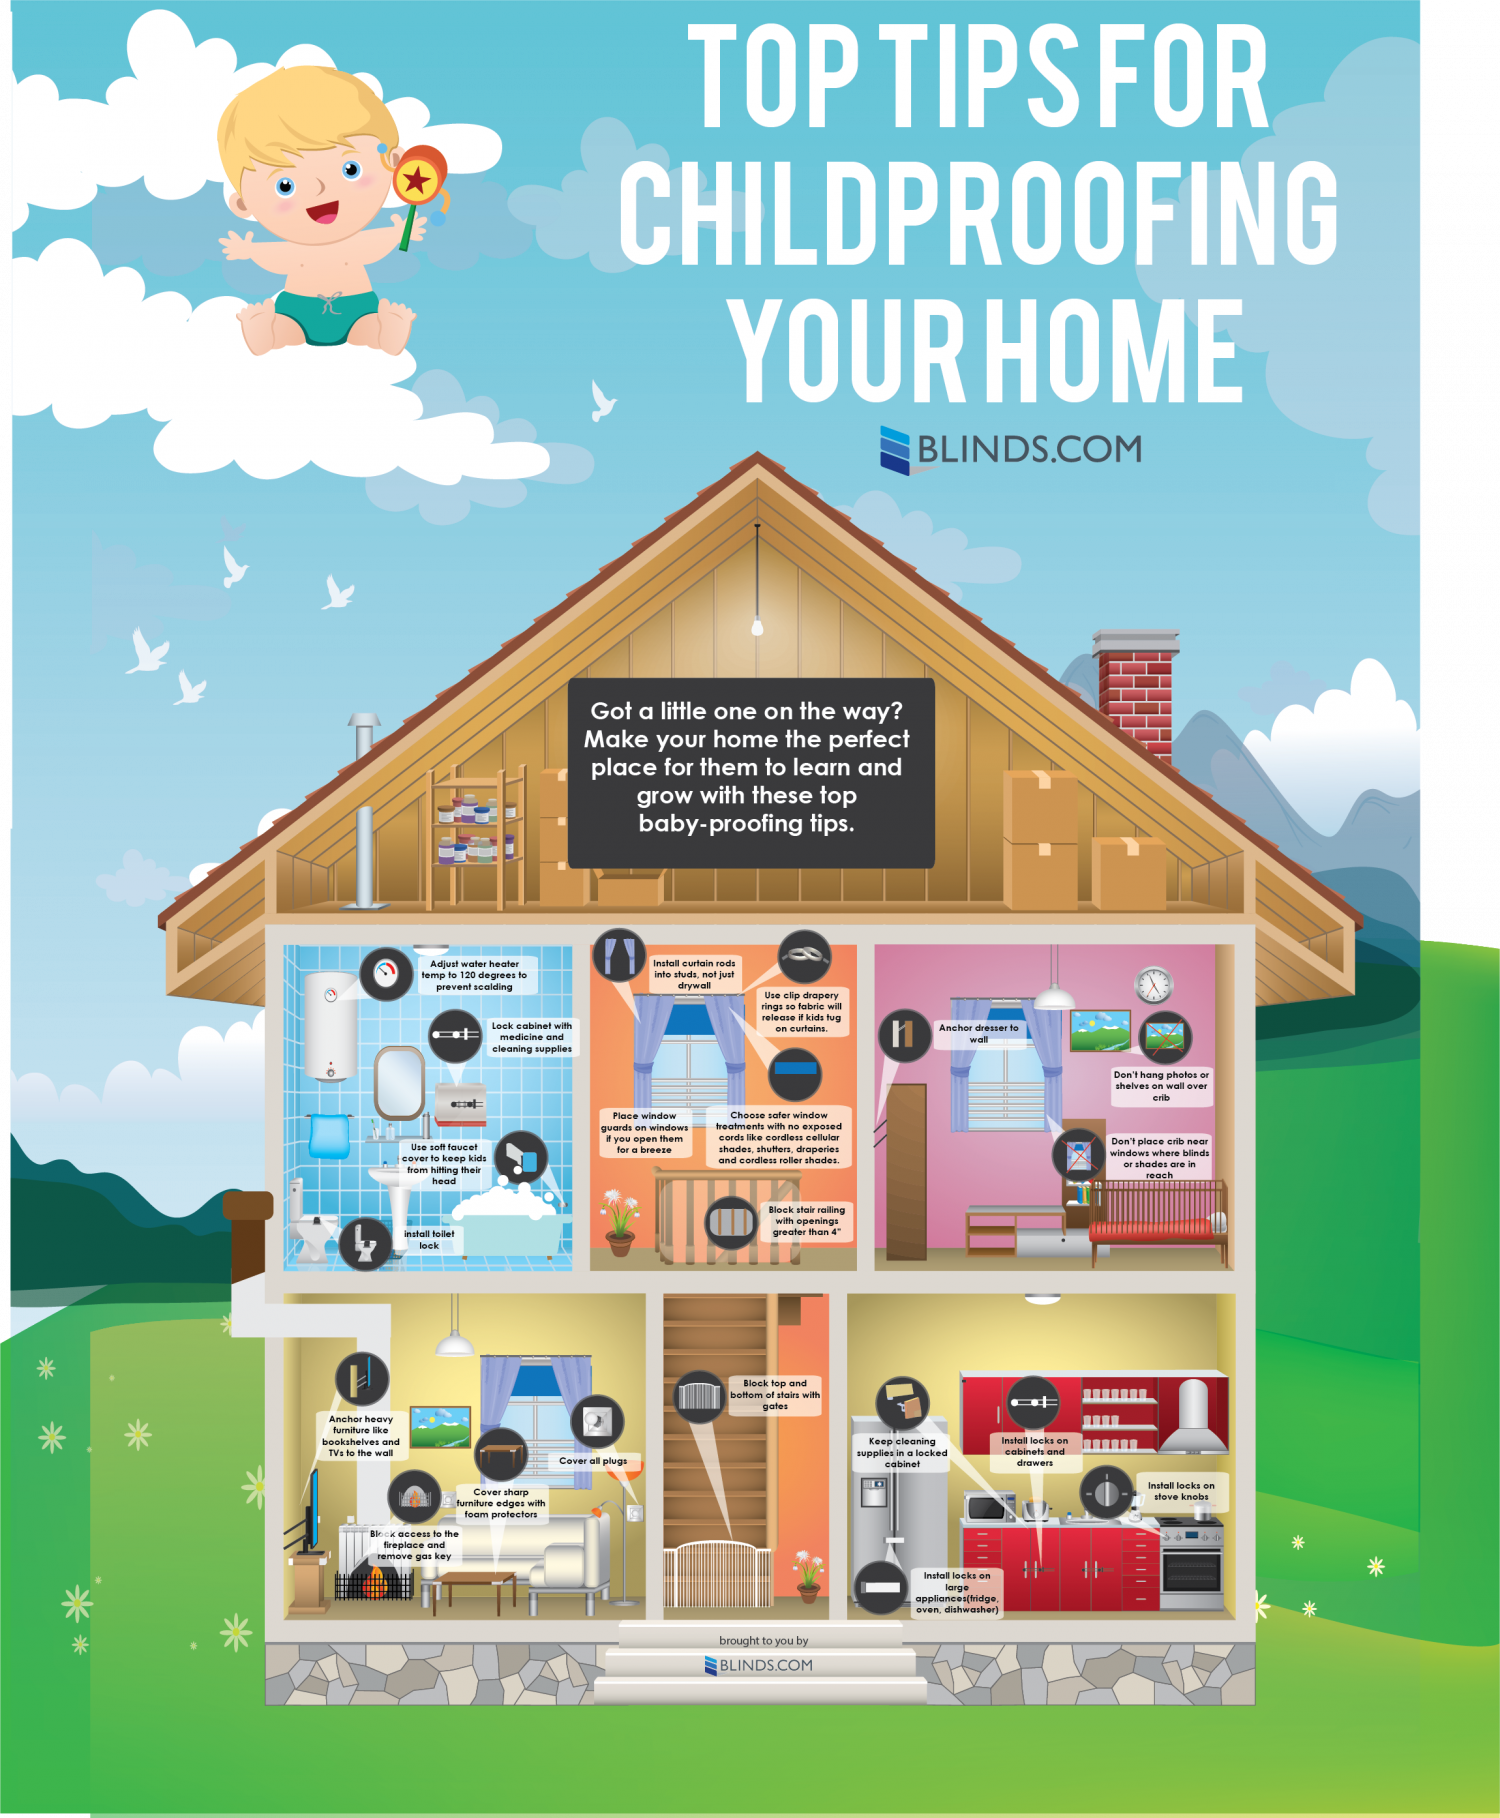 Top Tips for Childproofing Your Home Infographic